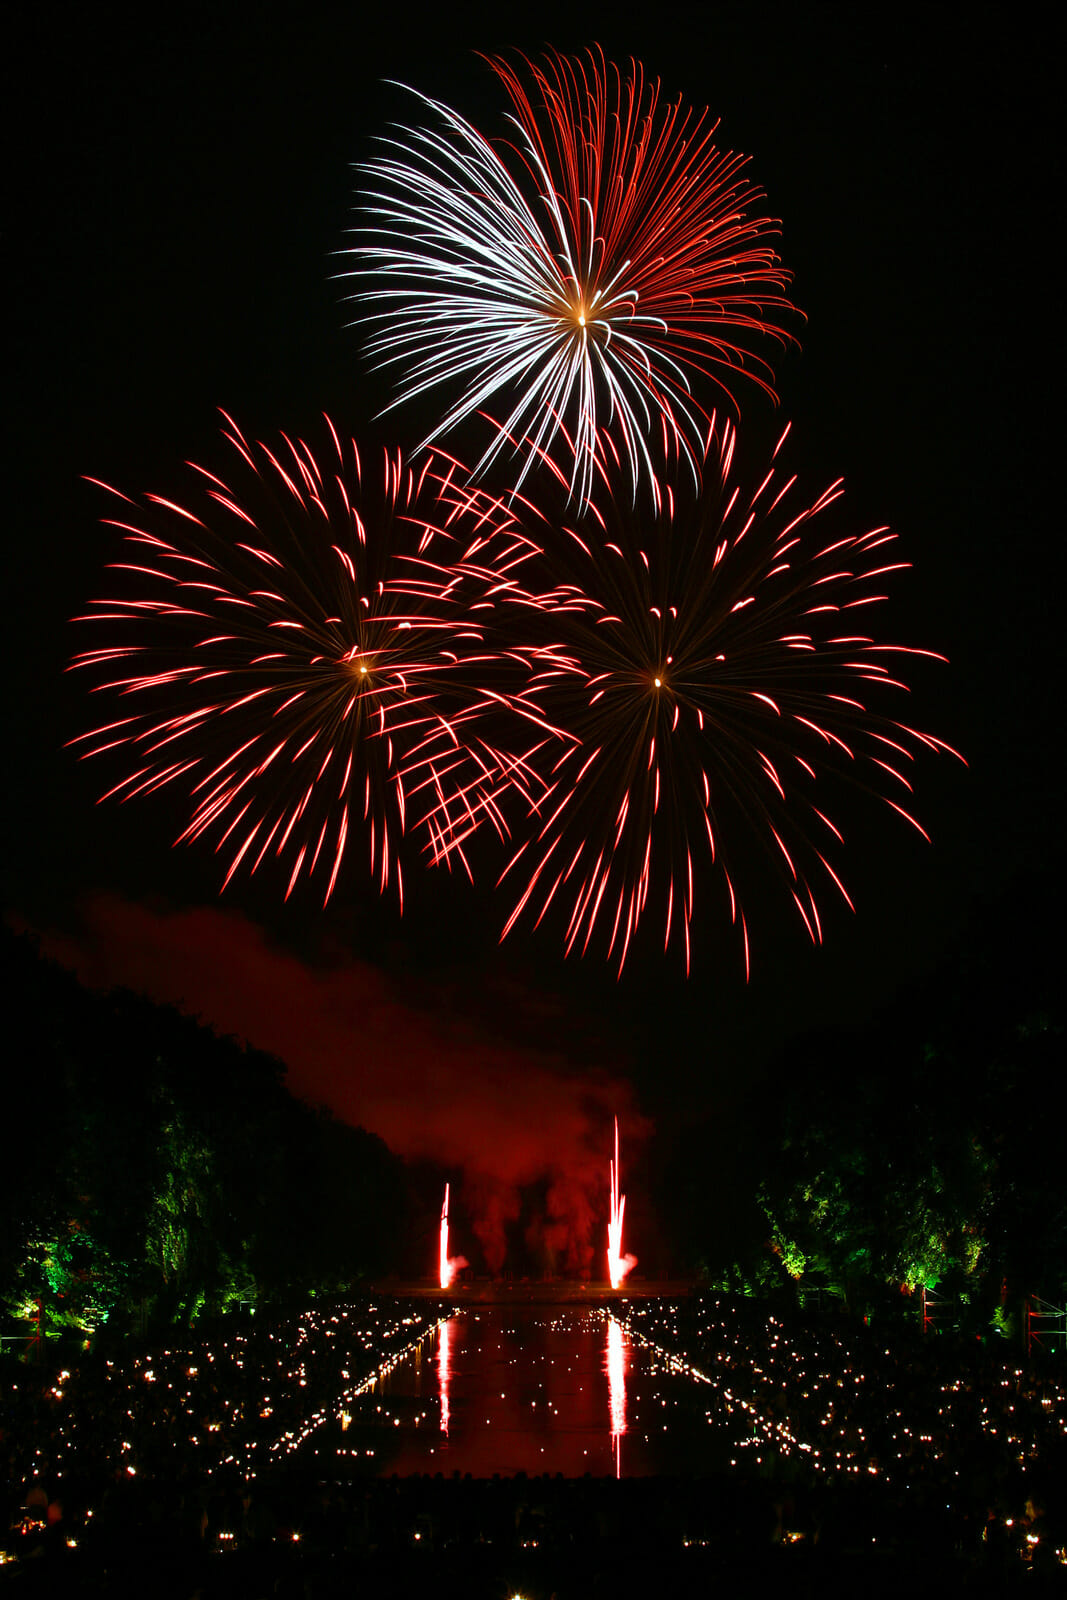 When the bang is too loud – Protecting hearing during fireworks